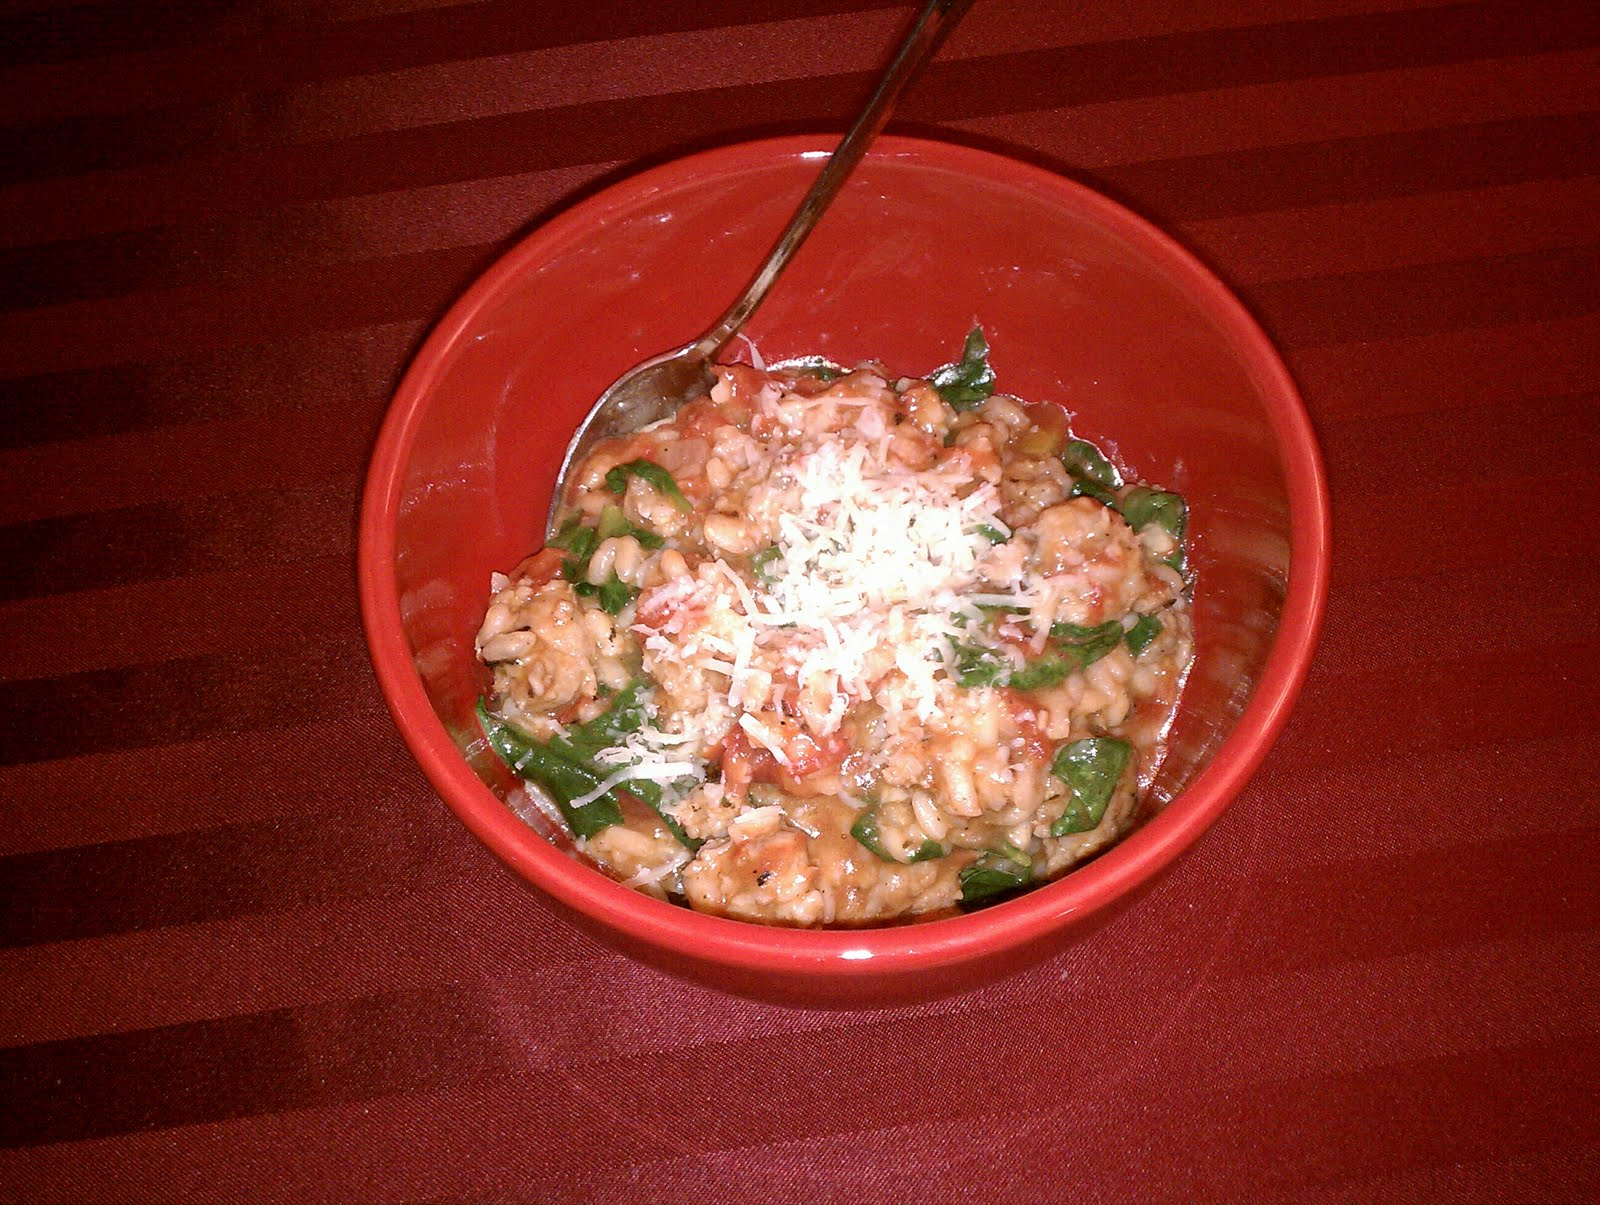 Colleen's Kitchen Therapy: Tomato and Sausage Risotto